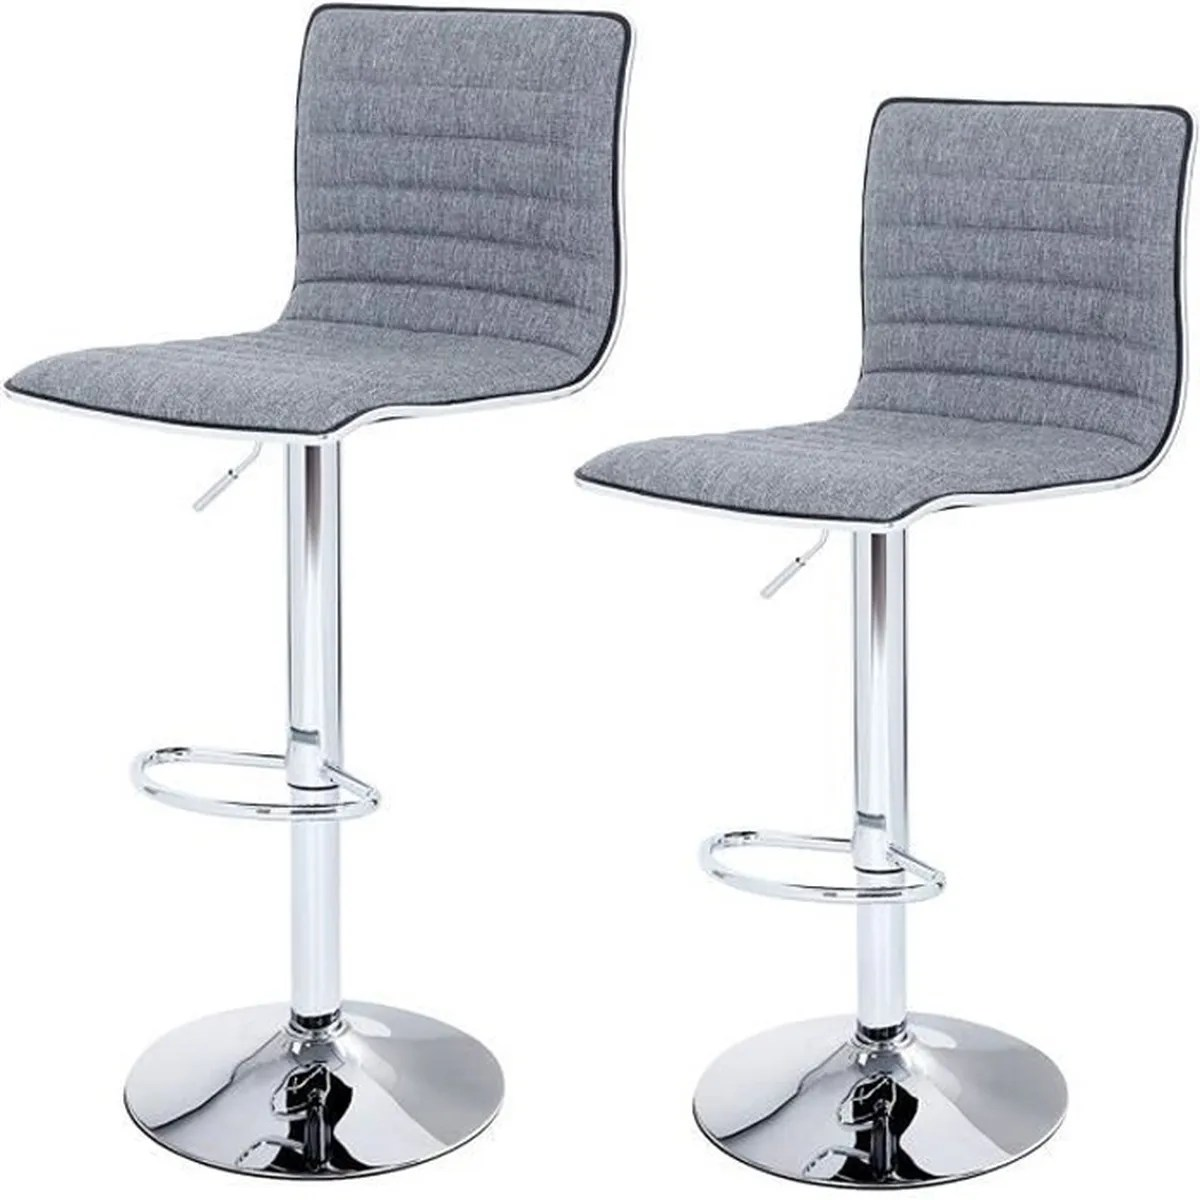 Songmics Lot De 2 Tabourets De Bar Stool Songmics Lot De 2 Tabourets De Bar Chromé Revêtement En Tissu